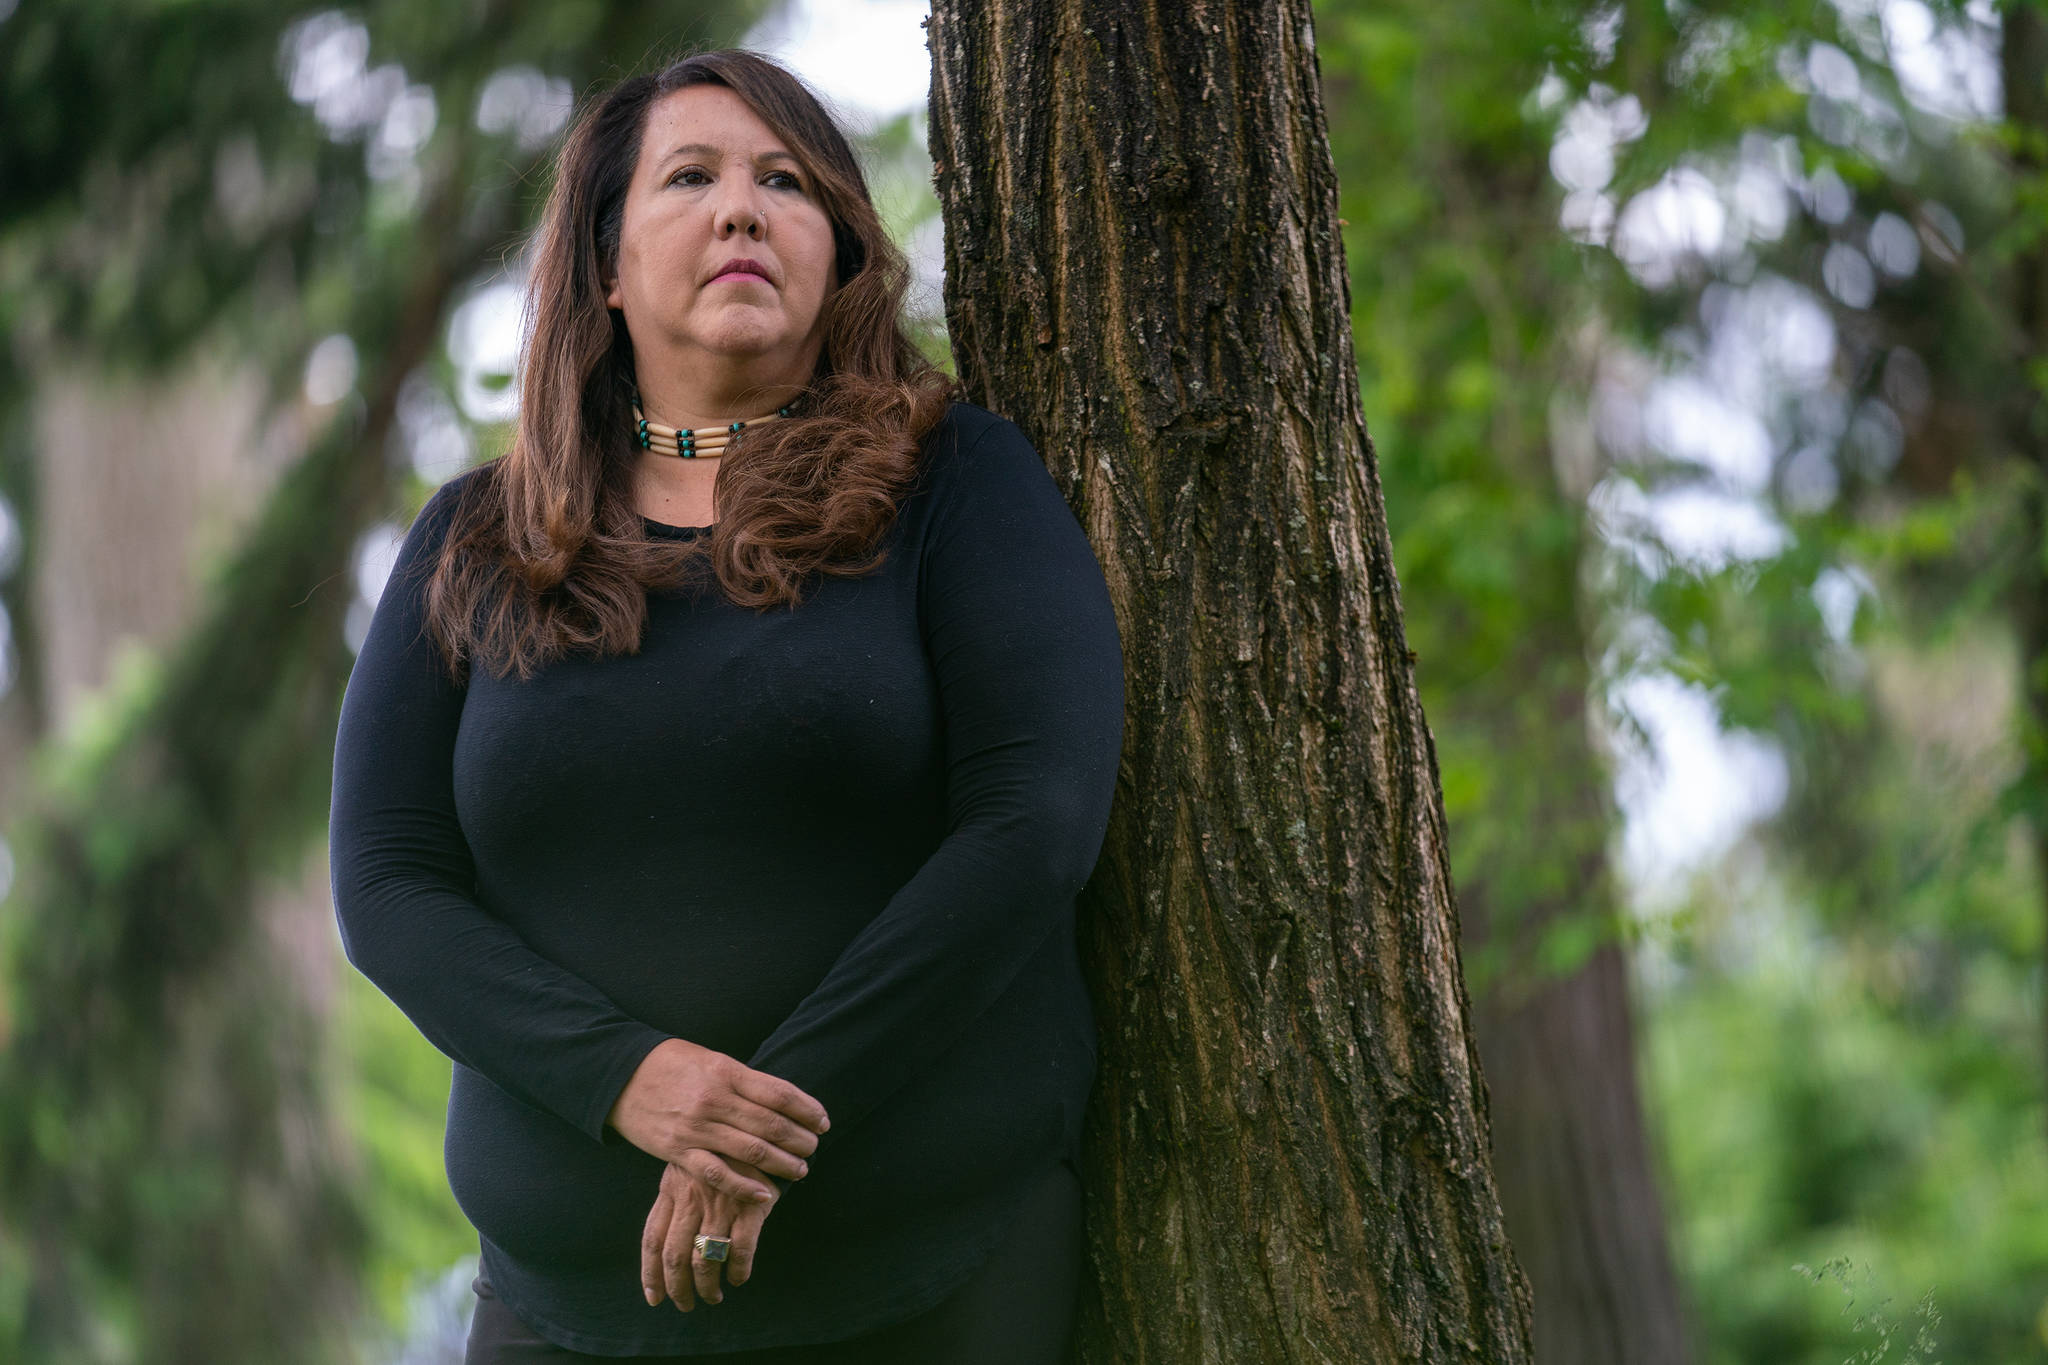 Tina Taphouse is pictured in Langley, B.C., Monday, June 7, 2021. THE CANADIAN PRESS/Jonathan Hayward